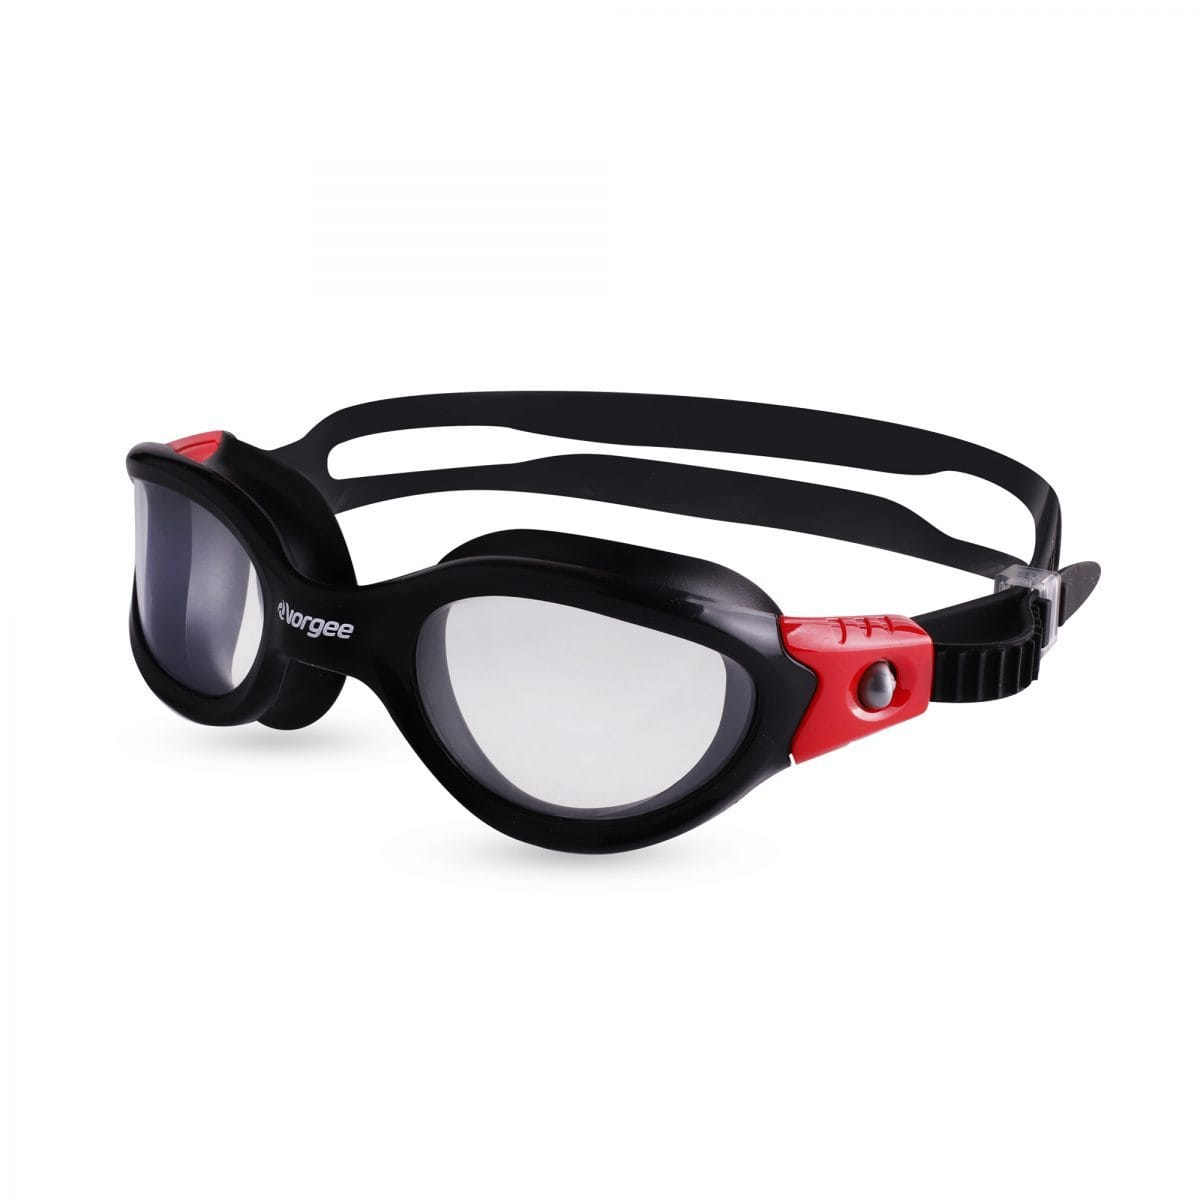 Vorgee Vortech Max Clear Lens Swim Goggle by Vorgee - Ocean Junction